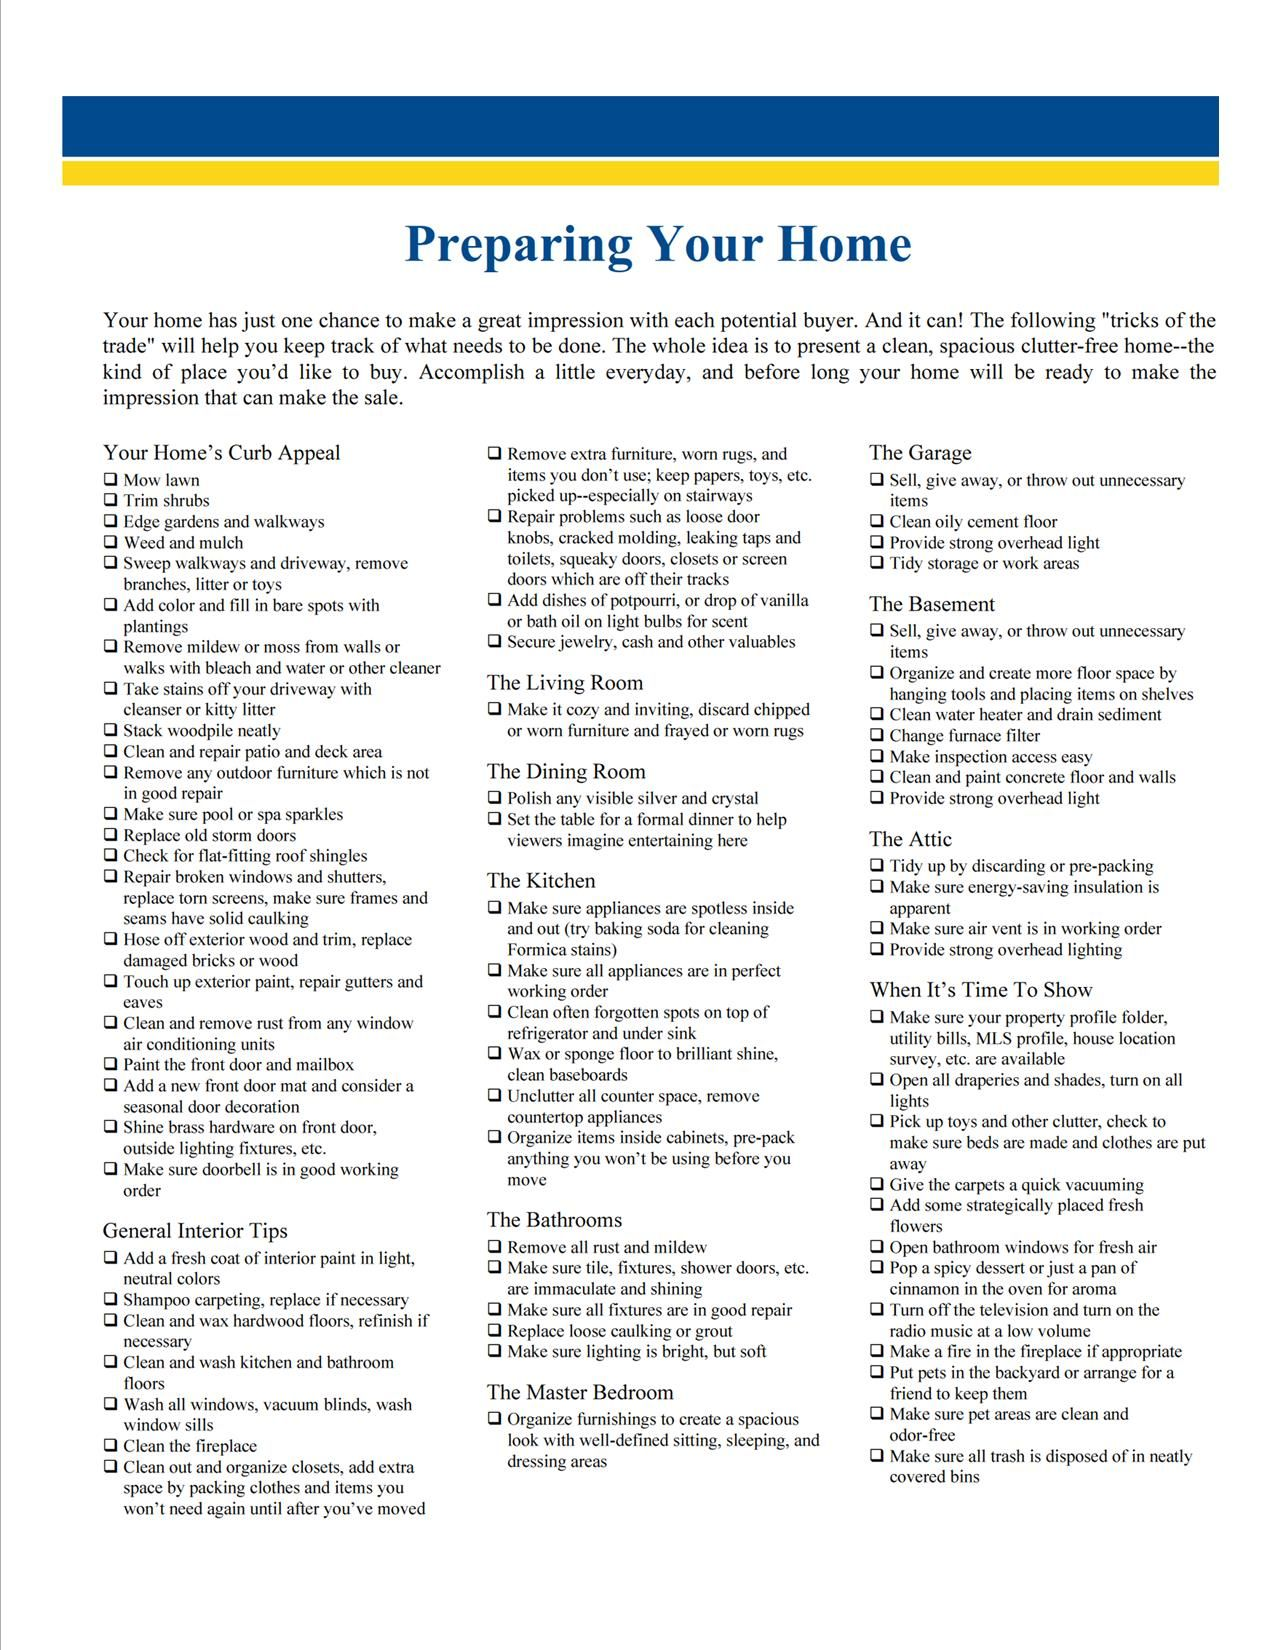 Preparing Your Home To Sell Checklist Home Selling Tips Home Mortgage Mortgage Tips